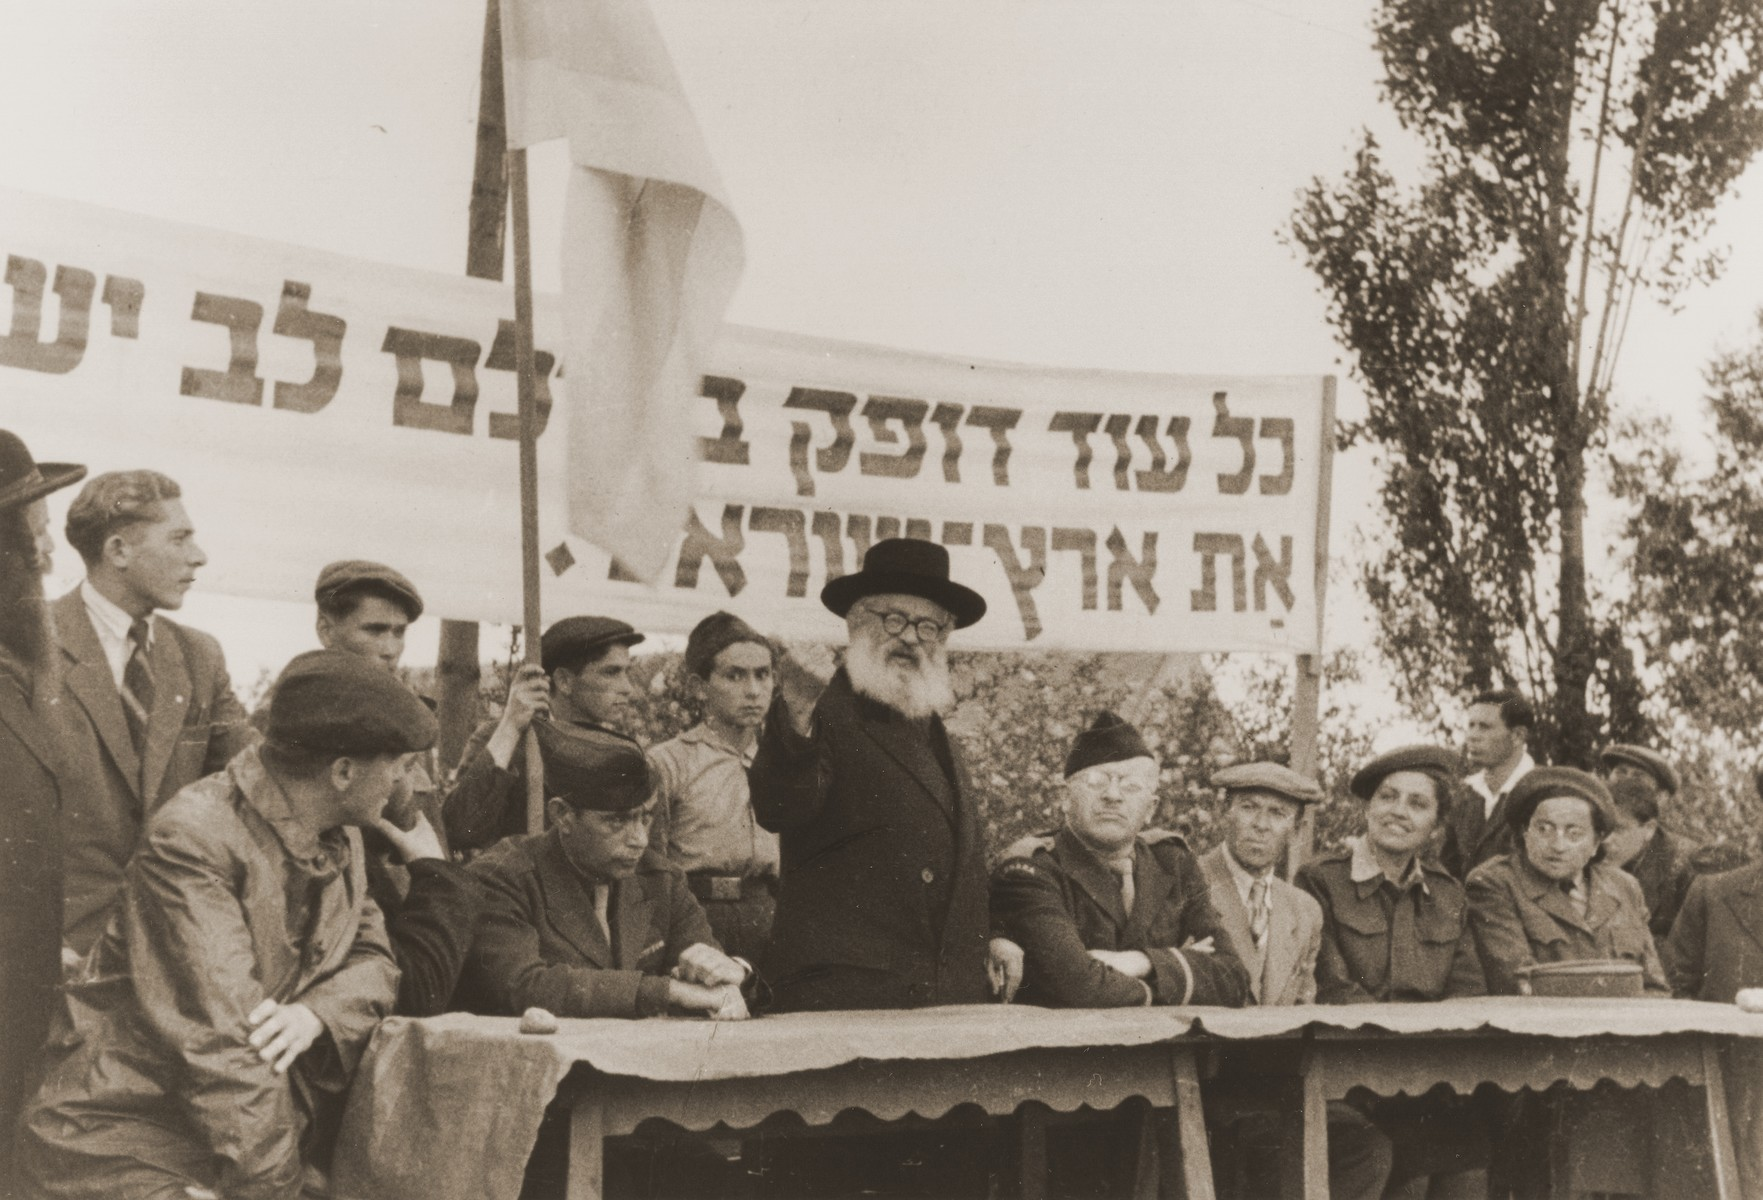 Rabbi Isaac Herzog, Ashkenzi chief rabbi of Palestine, delivers an addresses a Zionist rally at the Neu Freimann displaced persons camp.